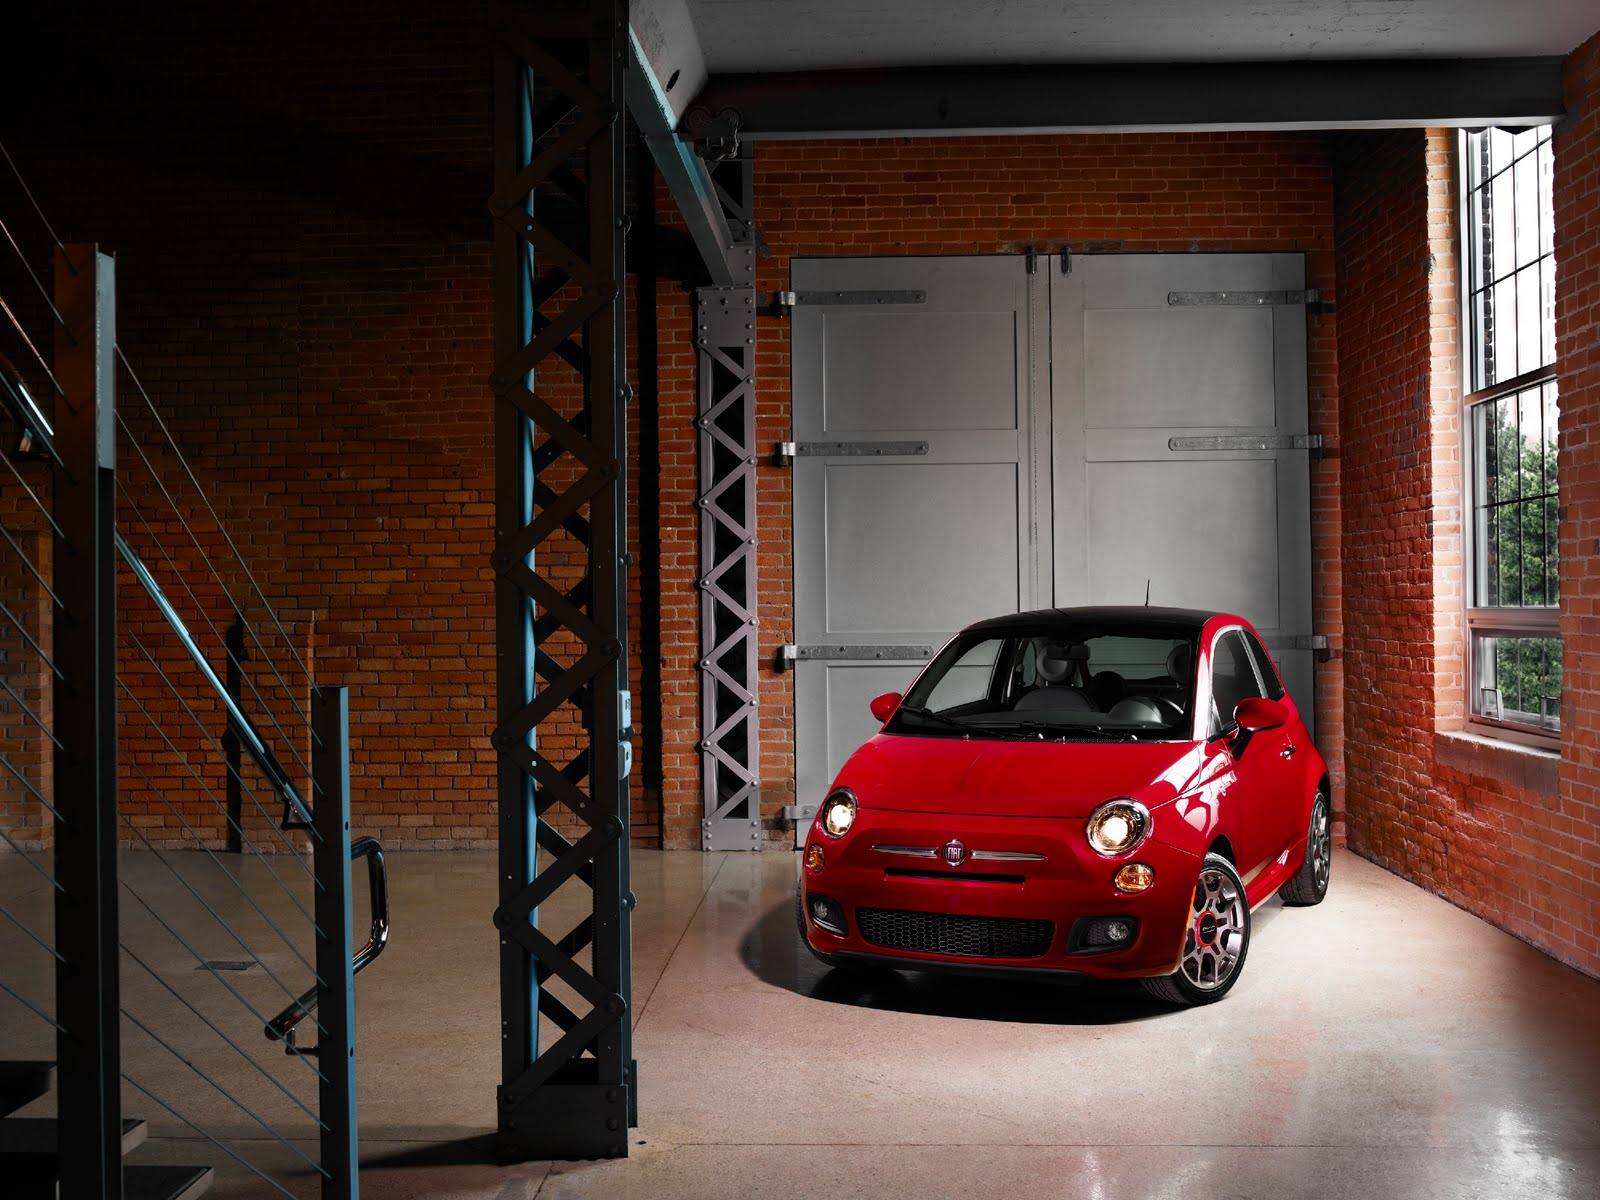 Every aspect of the new fiat 500 has been examined by fiat improved and refined